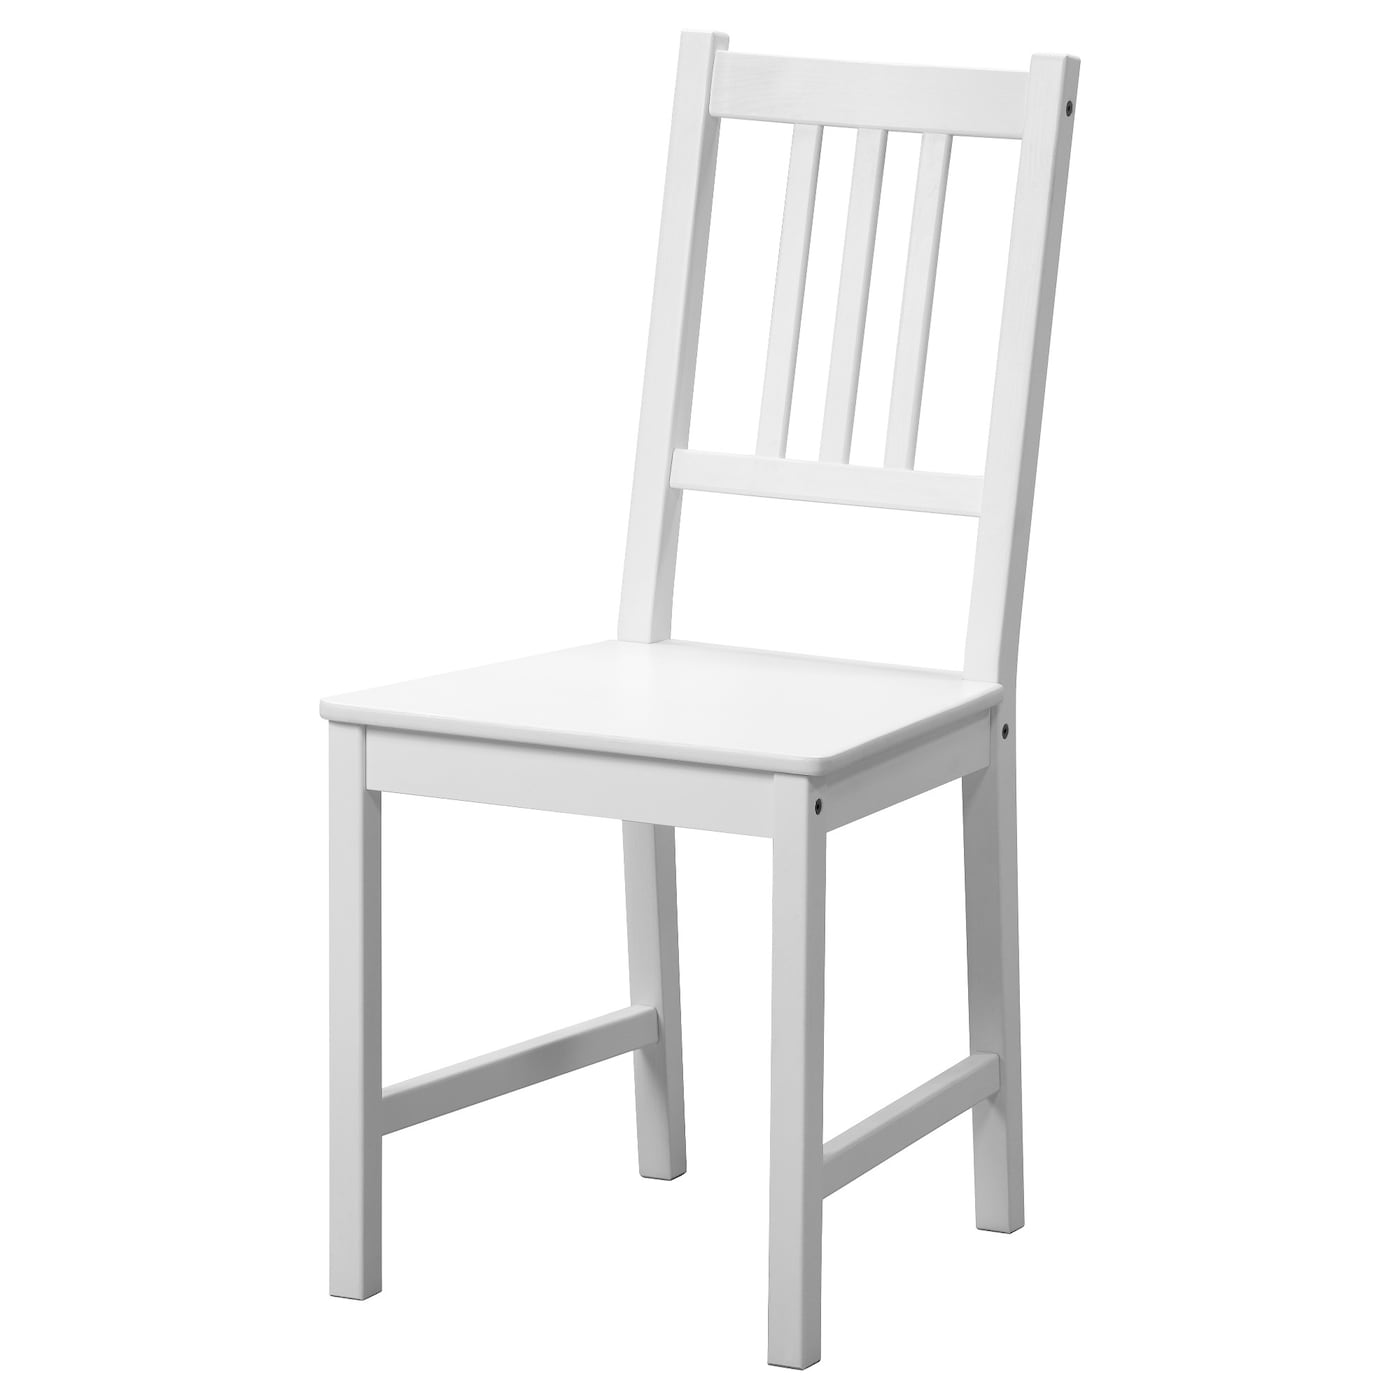 Stefan chair white ikea for Ikea sedie per scrivania